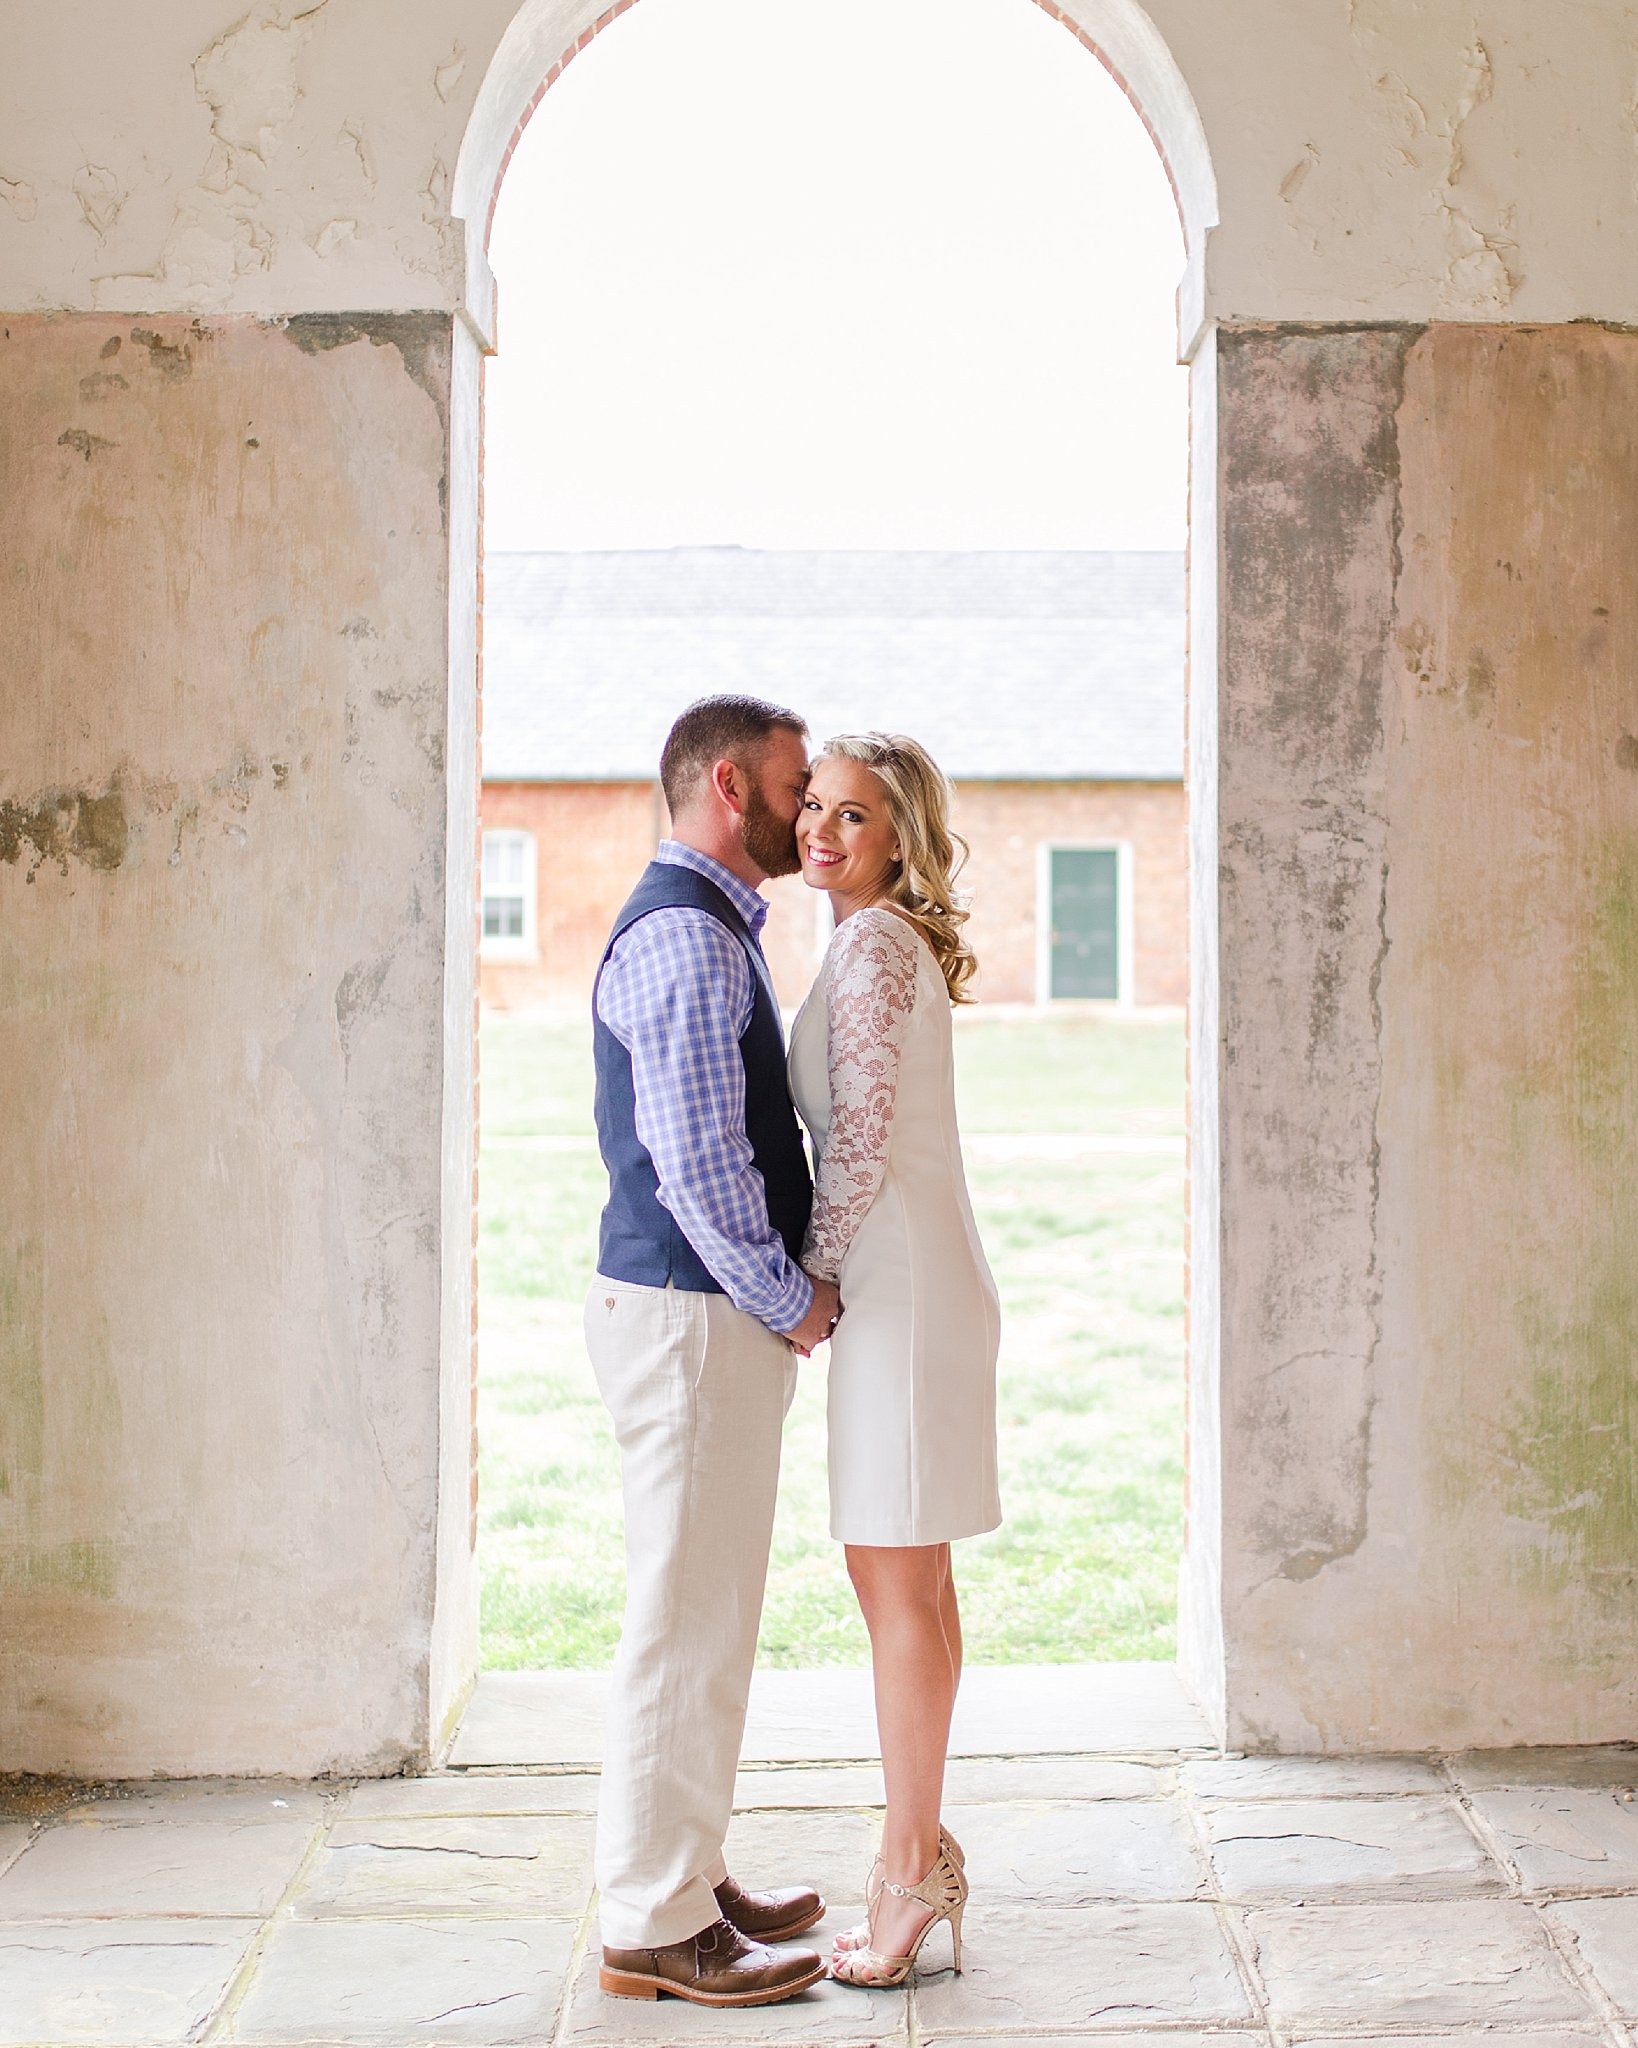 Virginia Wedding - Hanover Courthouse - Marianne + Mike